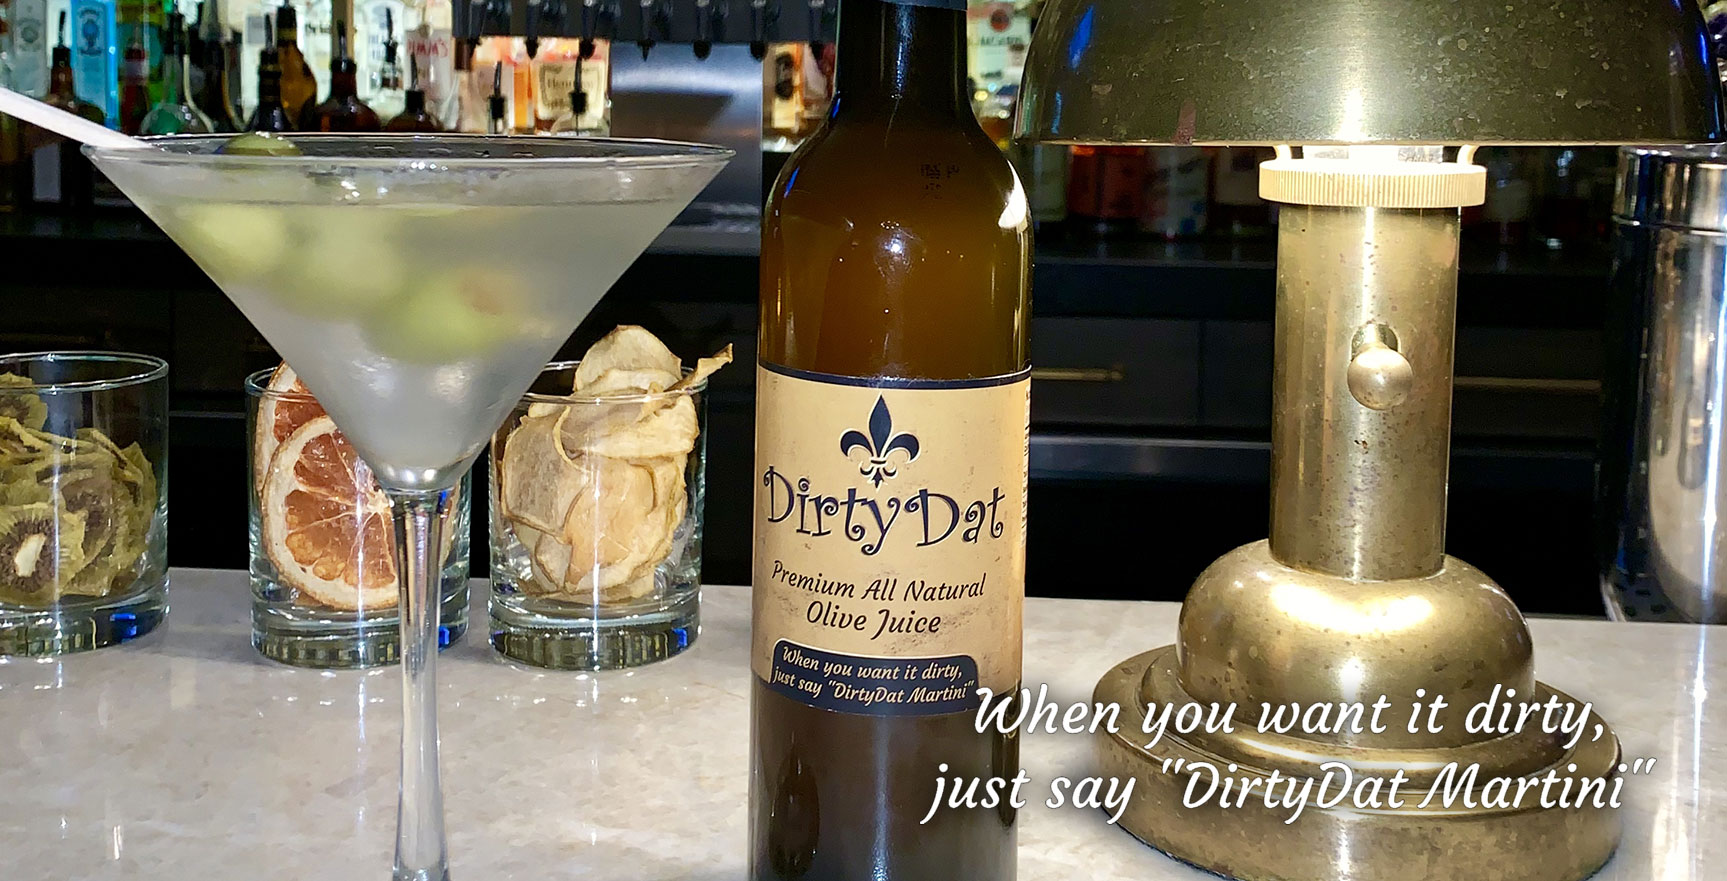 DirtyDat Premium All Natural Olive Juice